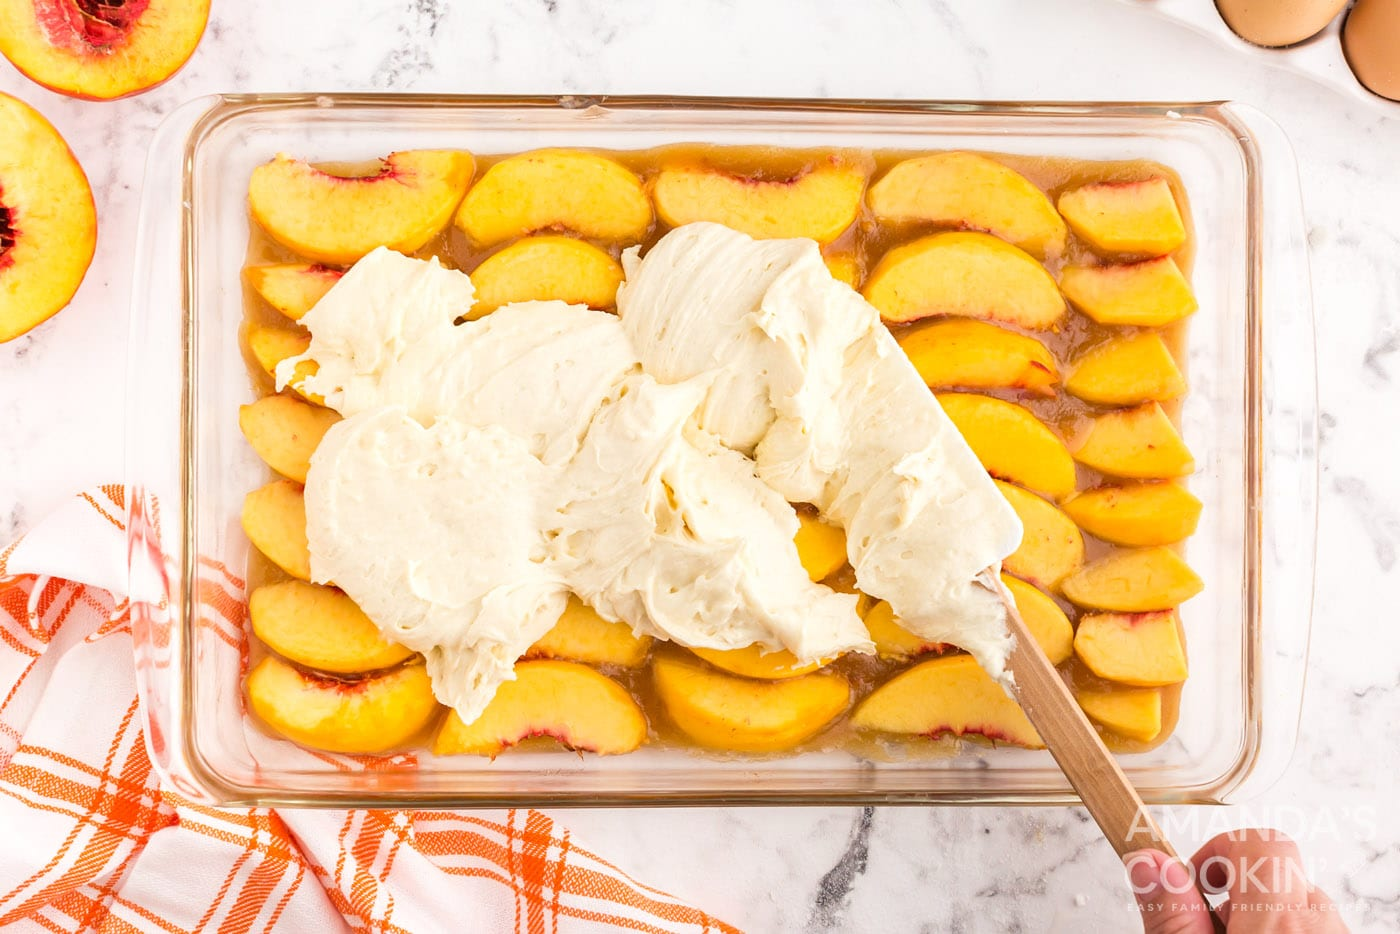 spread cake batter on top of peaches in a baking dish